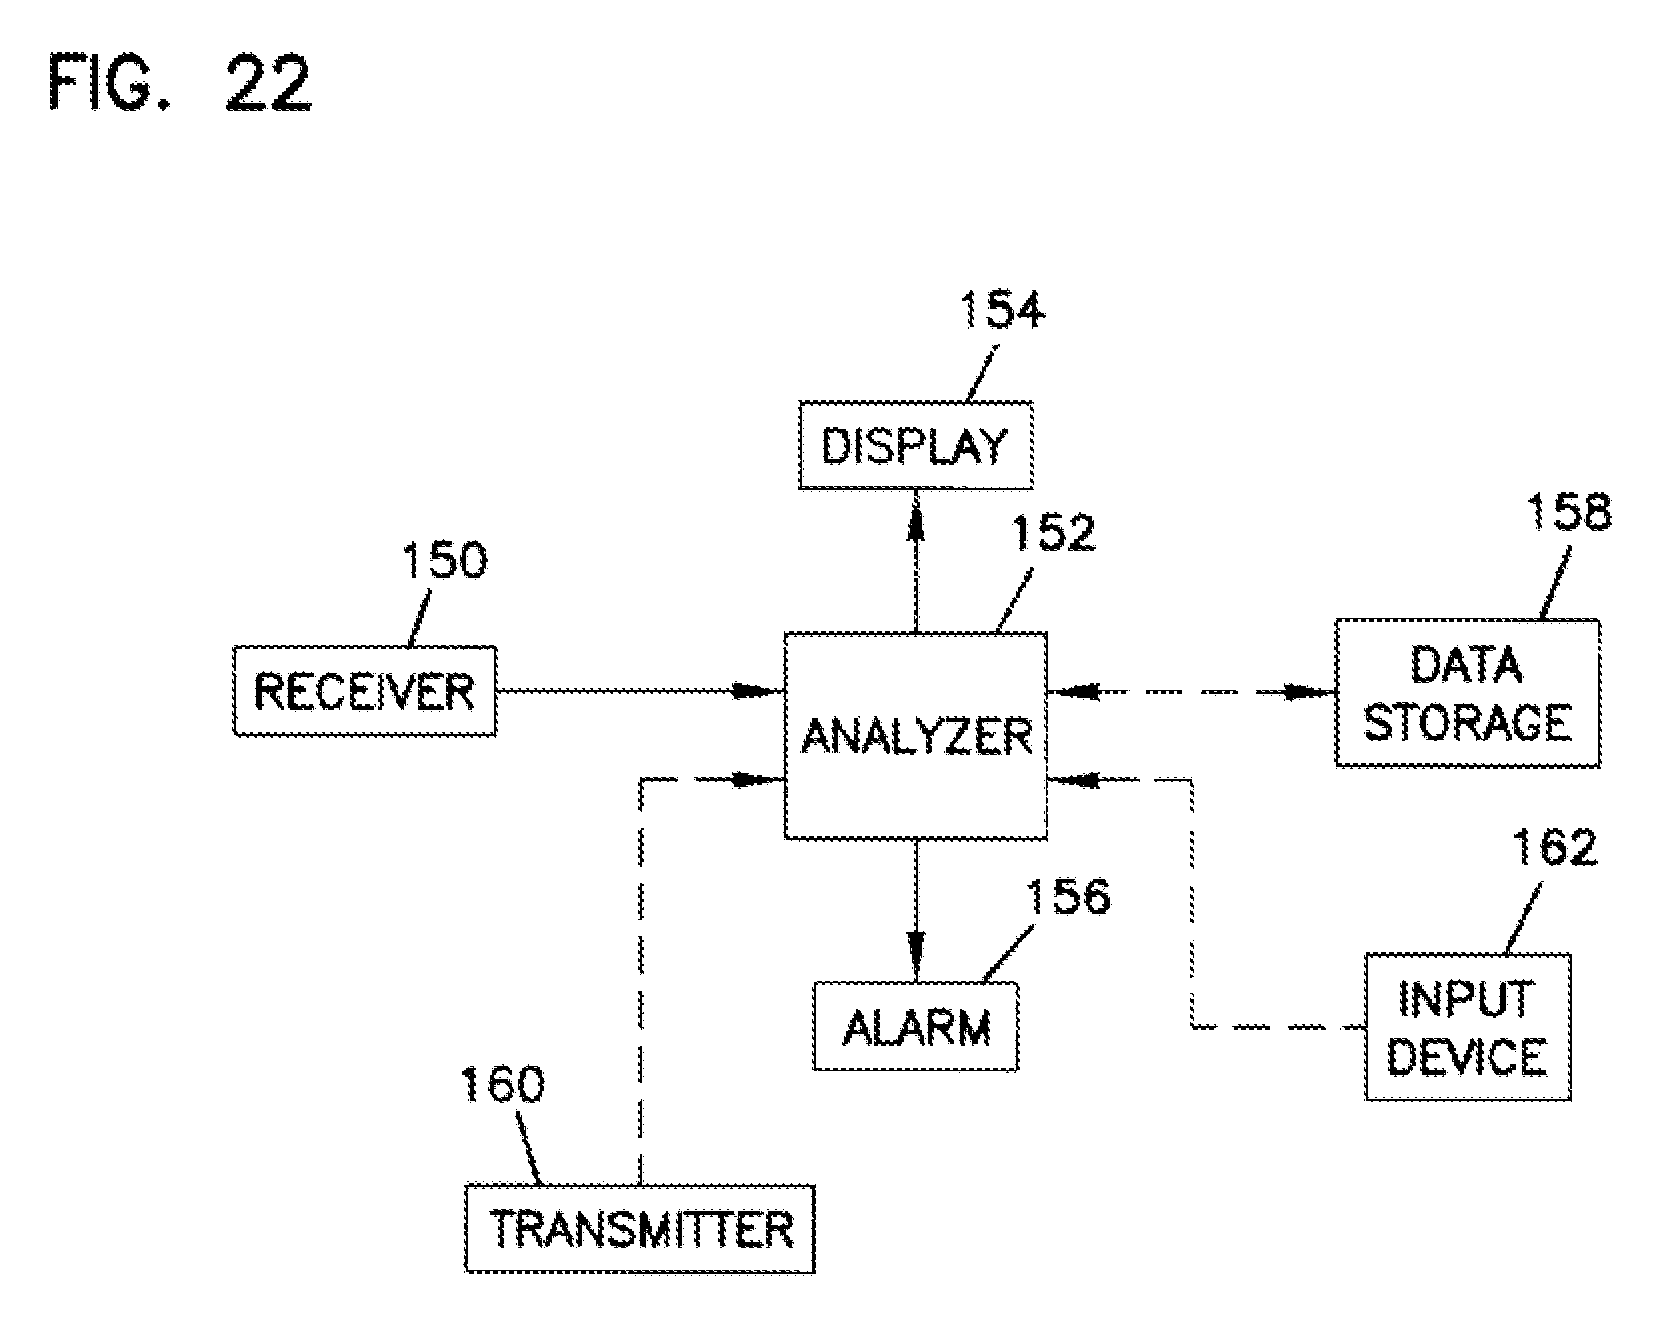 Us9042953b2 Analyte Monitoring Device And Methods Of Use Google Far West Cathodic Rectifier Wiring Diagram Patents